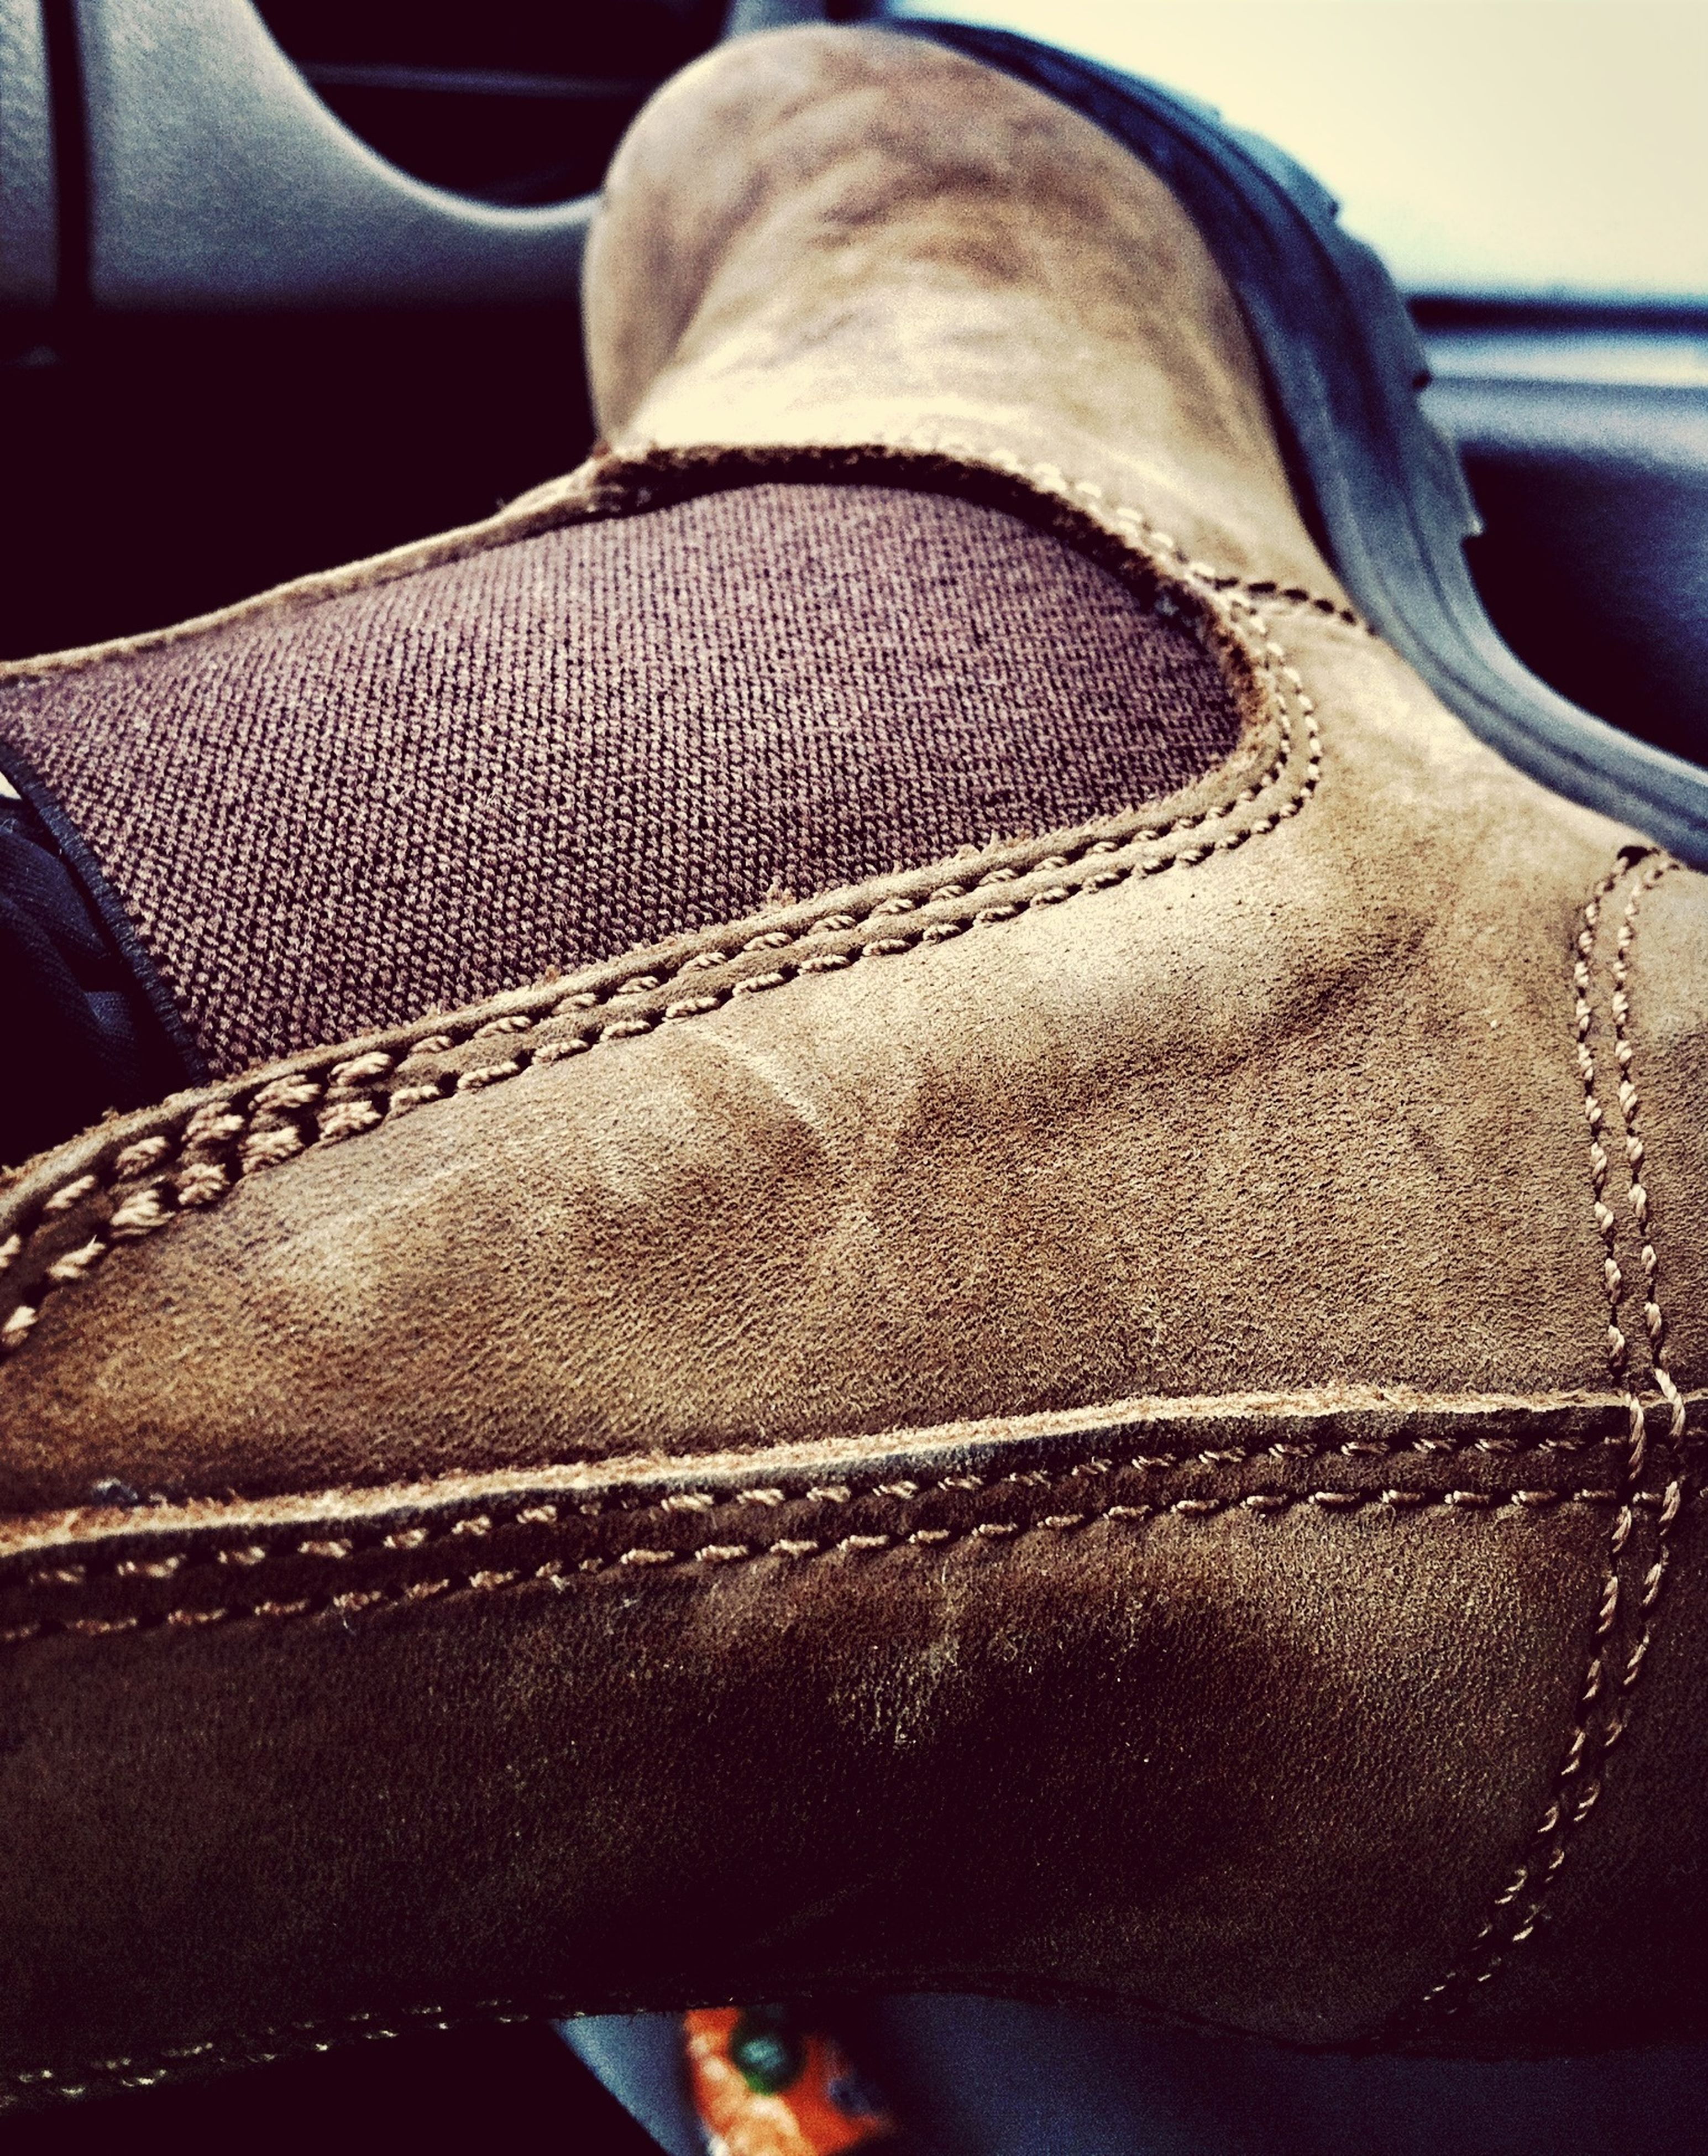 close-up, indoors, part of, car, land vehicle, relaxation, high angle view, detail, focus on foreground, transportation, shoe, no people, black color, day, sunlight, jeans, cropped, low section, brown